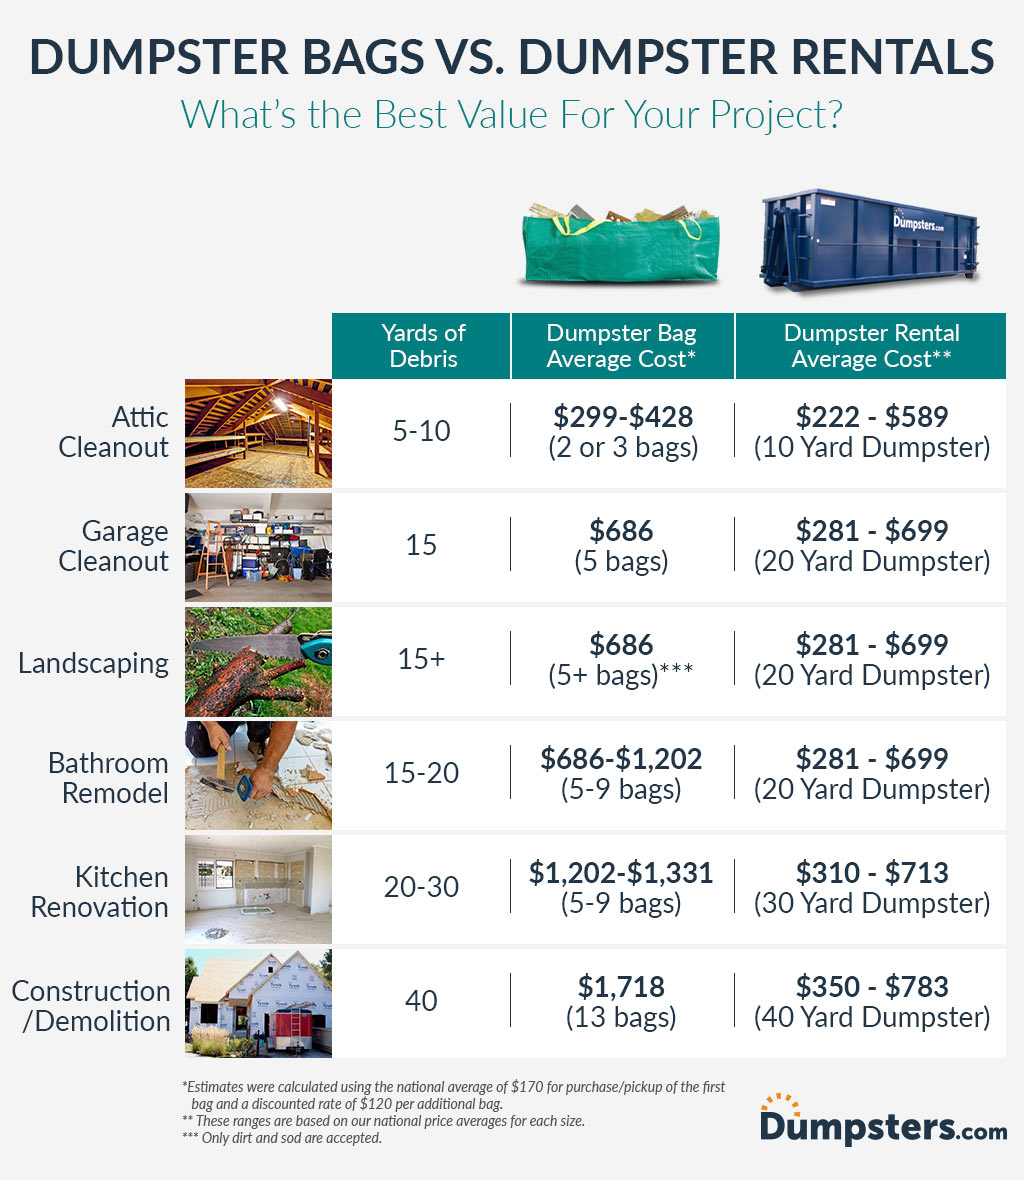 Rental And Pricing Information: Pros And Cons Of Dumpster Bags And Rentals